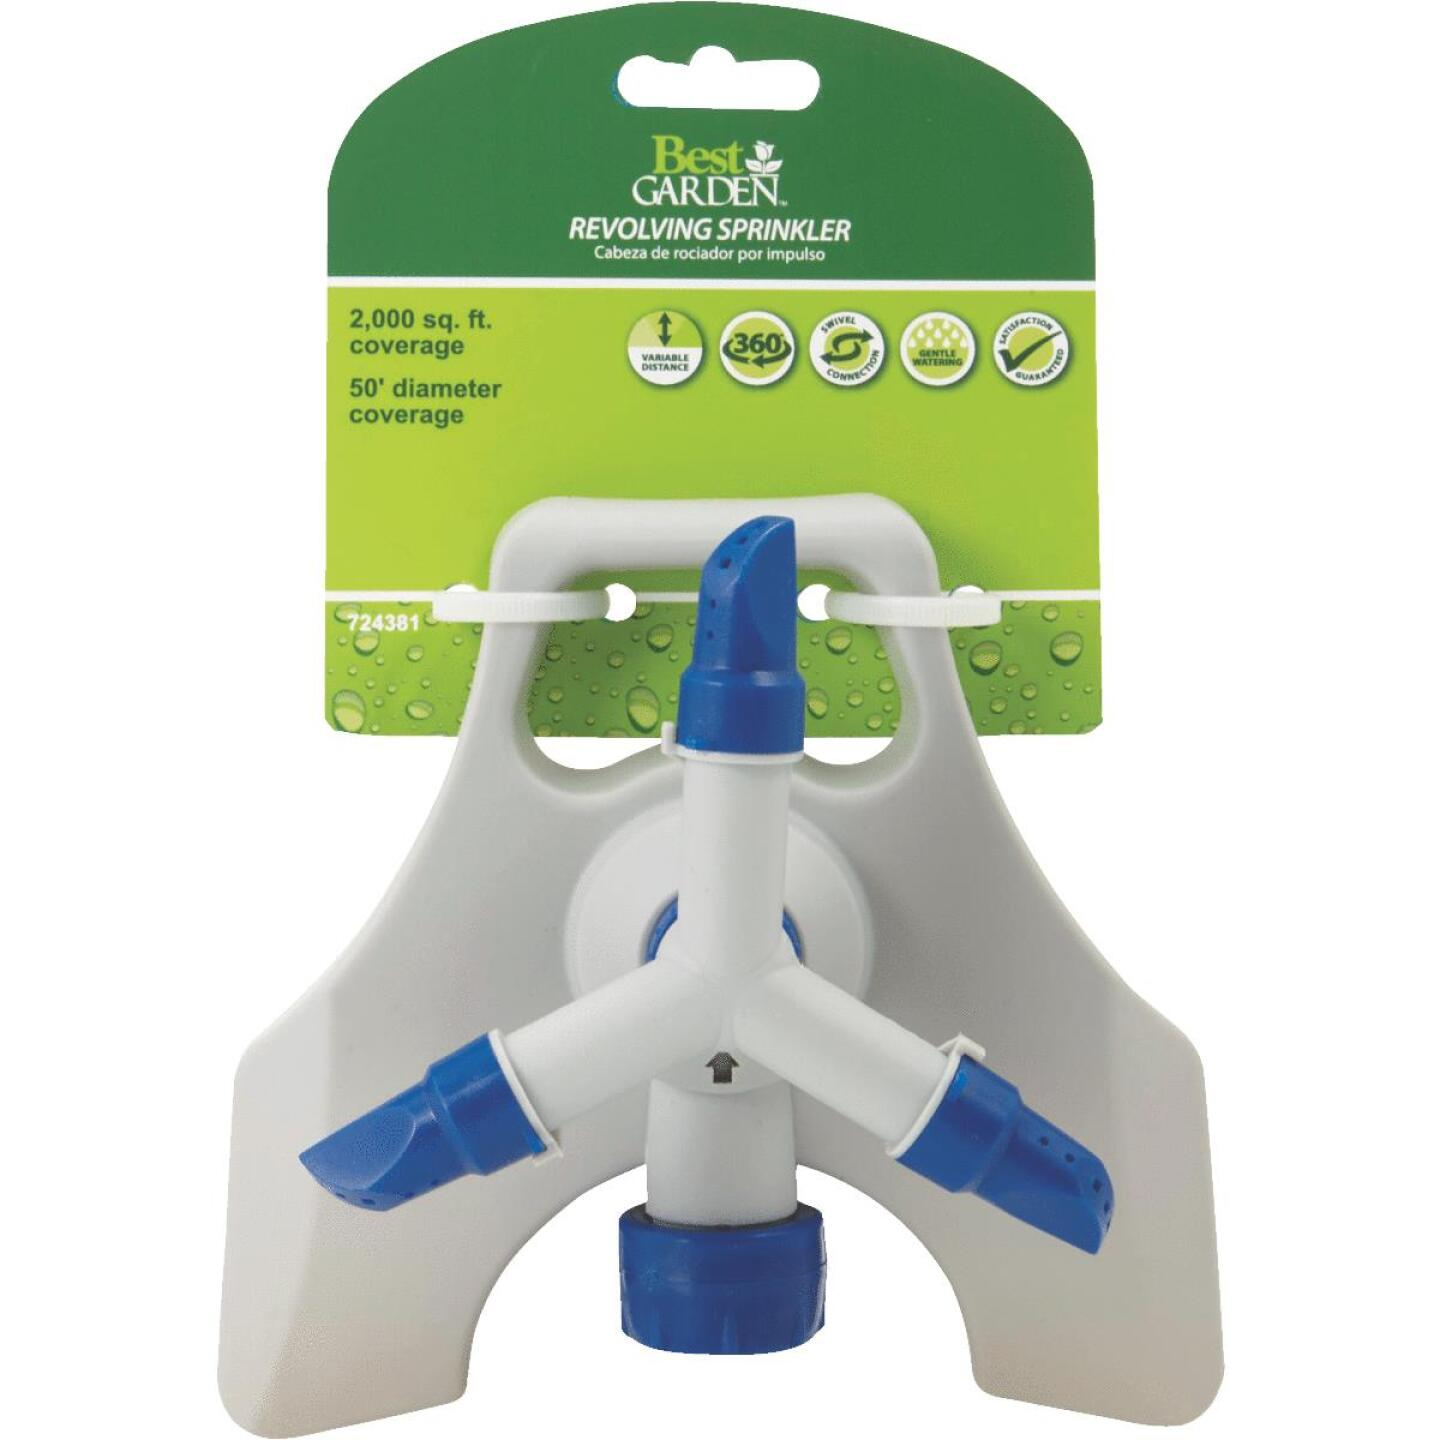 Best Garden Poly 50 Ft. Dia. 3-Arm Rotary Sprinkler Image 2